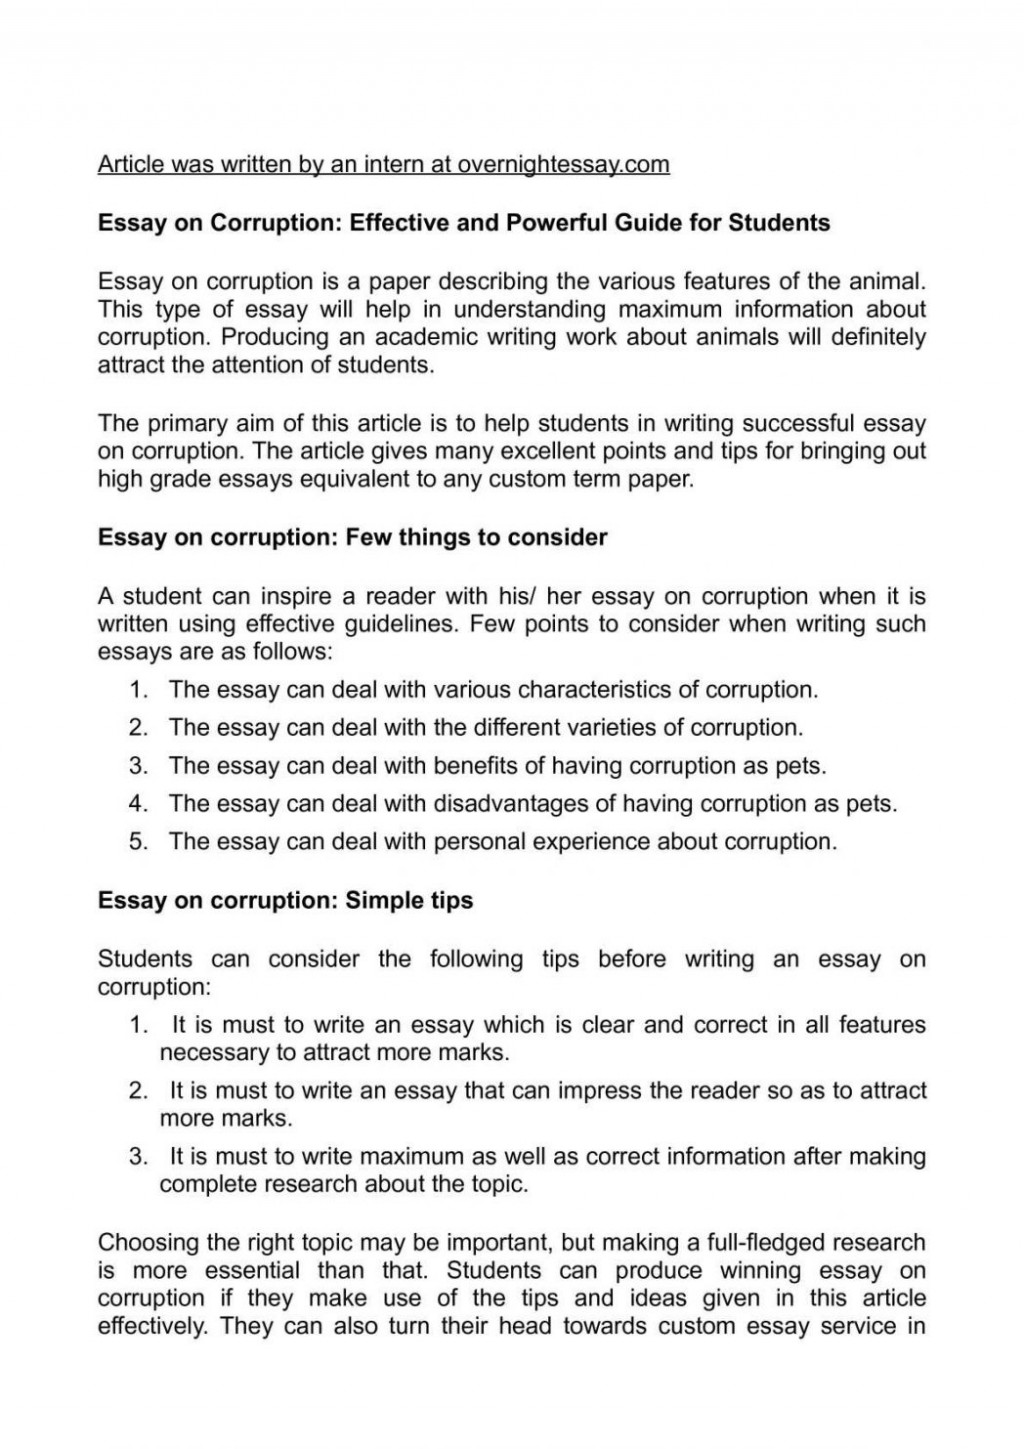 015 How To Write This I Believe Essay Easy Essays Calam Atilde Copy O On Corruption Effective Samples Good Topics Template 1048x1483 Fantastic A What Things Large